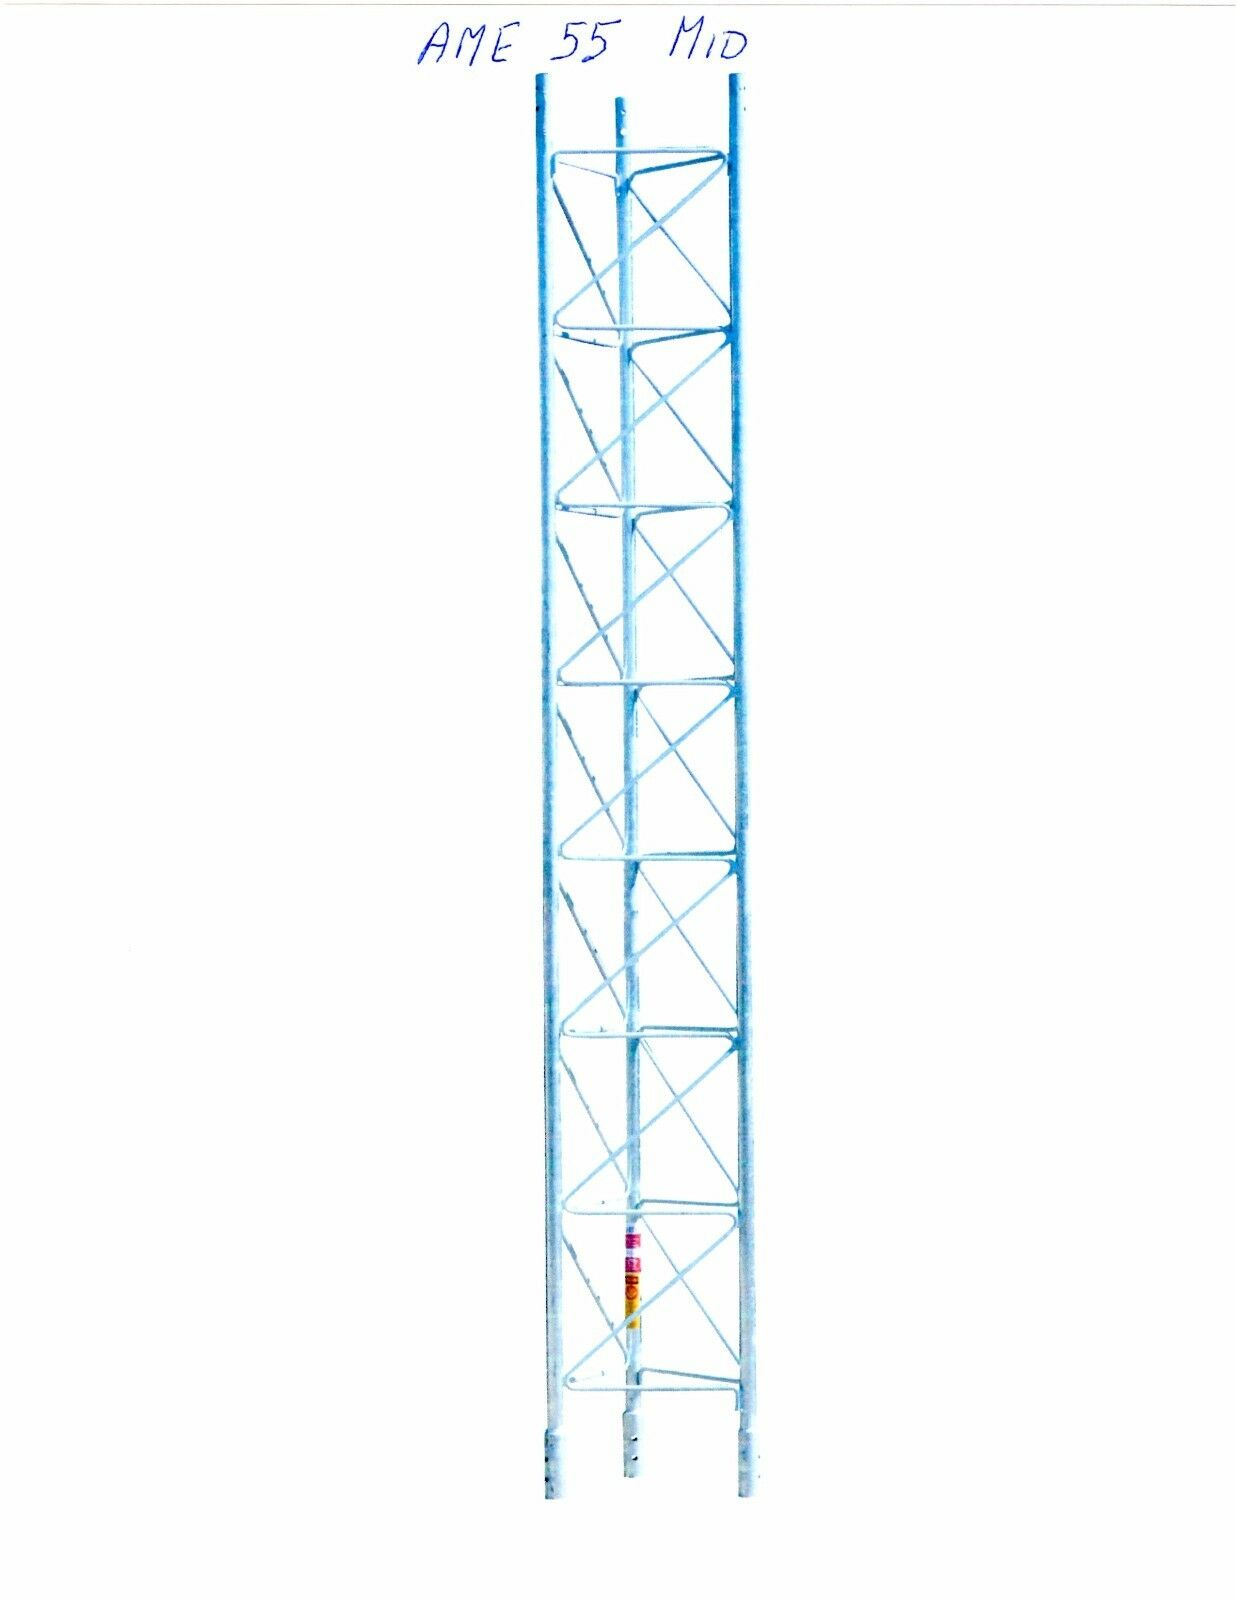 AMERICAN TOWER, ROHN TOWER STYLE-AME 55G -10' SECTION, Meets EIA/TIA Spec, OEM . Buy it now for 387.37